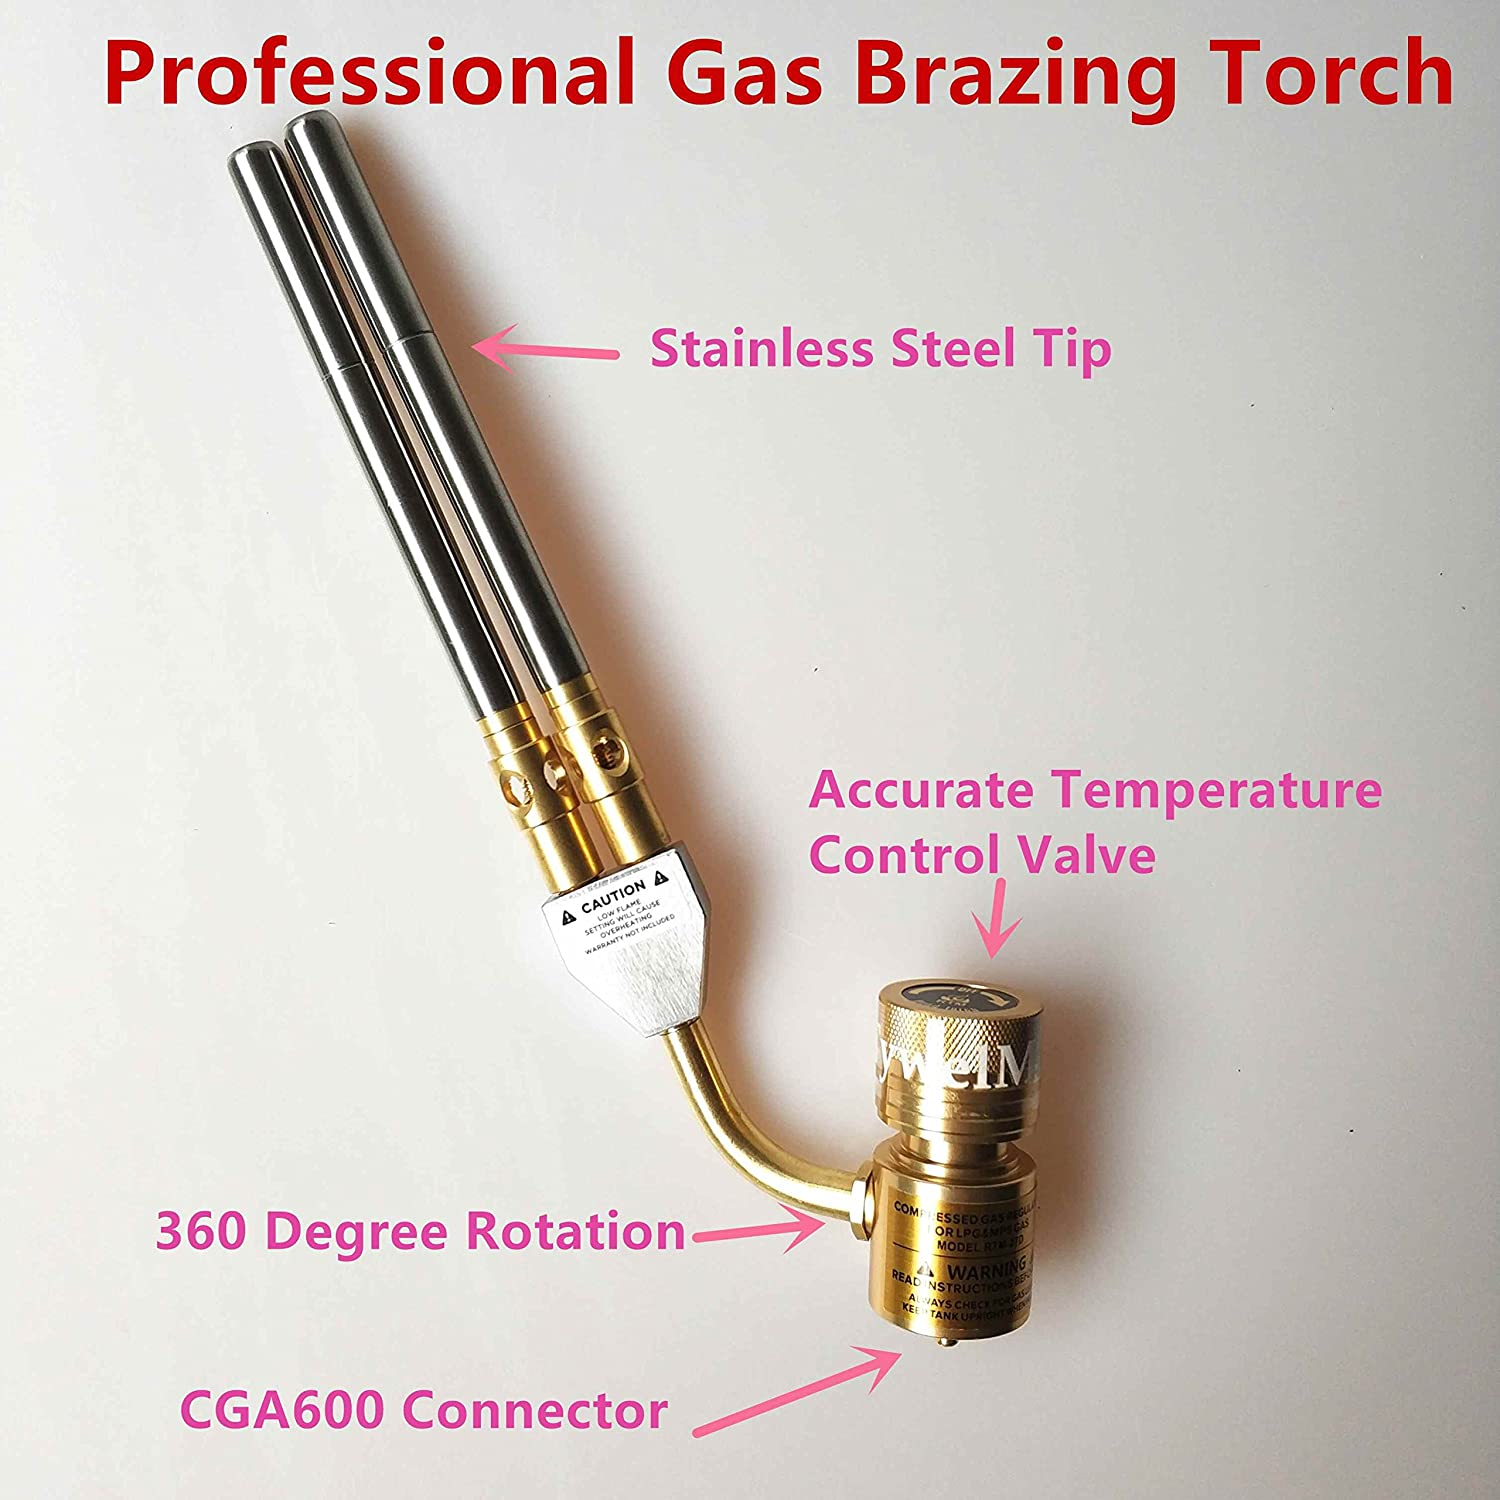 Tywel-2 Professional MAPP Gas Torch Brazing Torch of MAPP//Propane Gas 1.5m Hose for Brazing Soldering Welding Heating Application can also be used for BBQ HVAC Plumbing /…